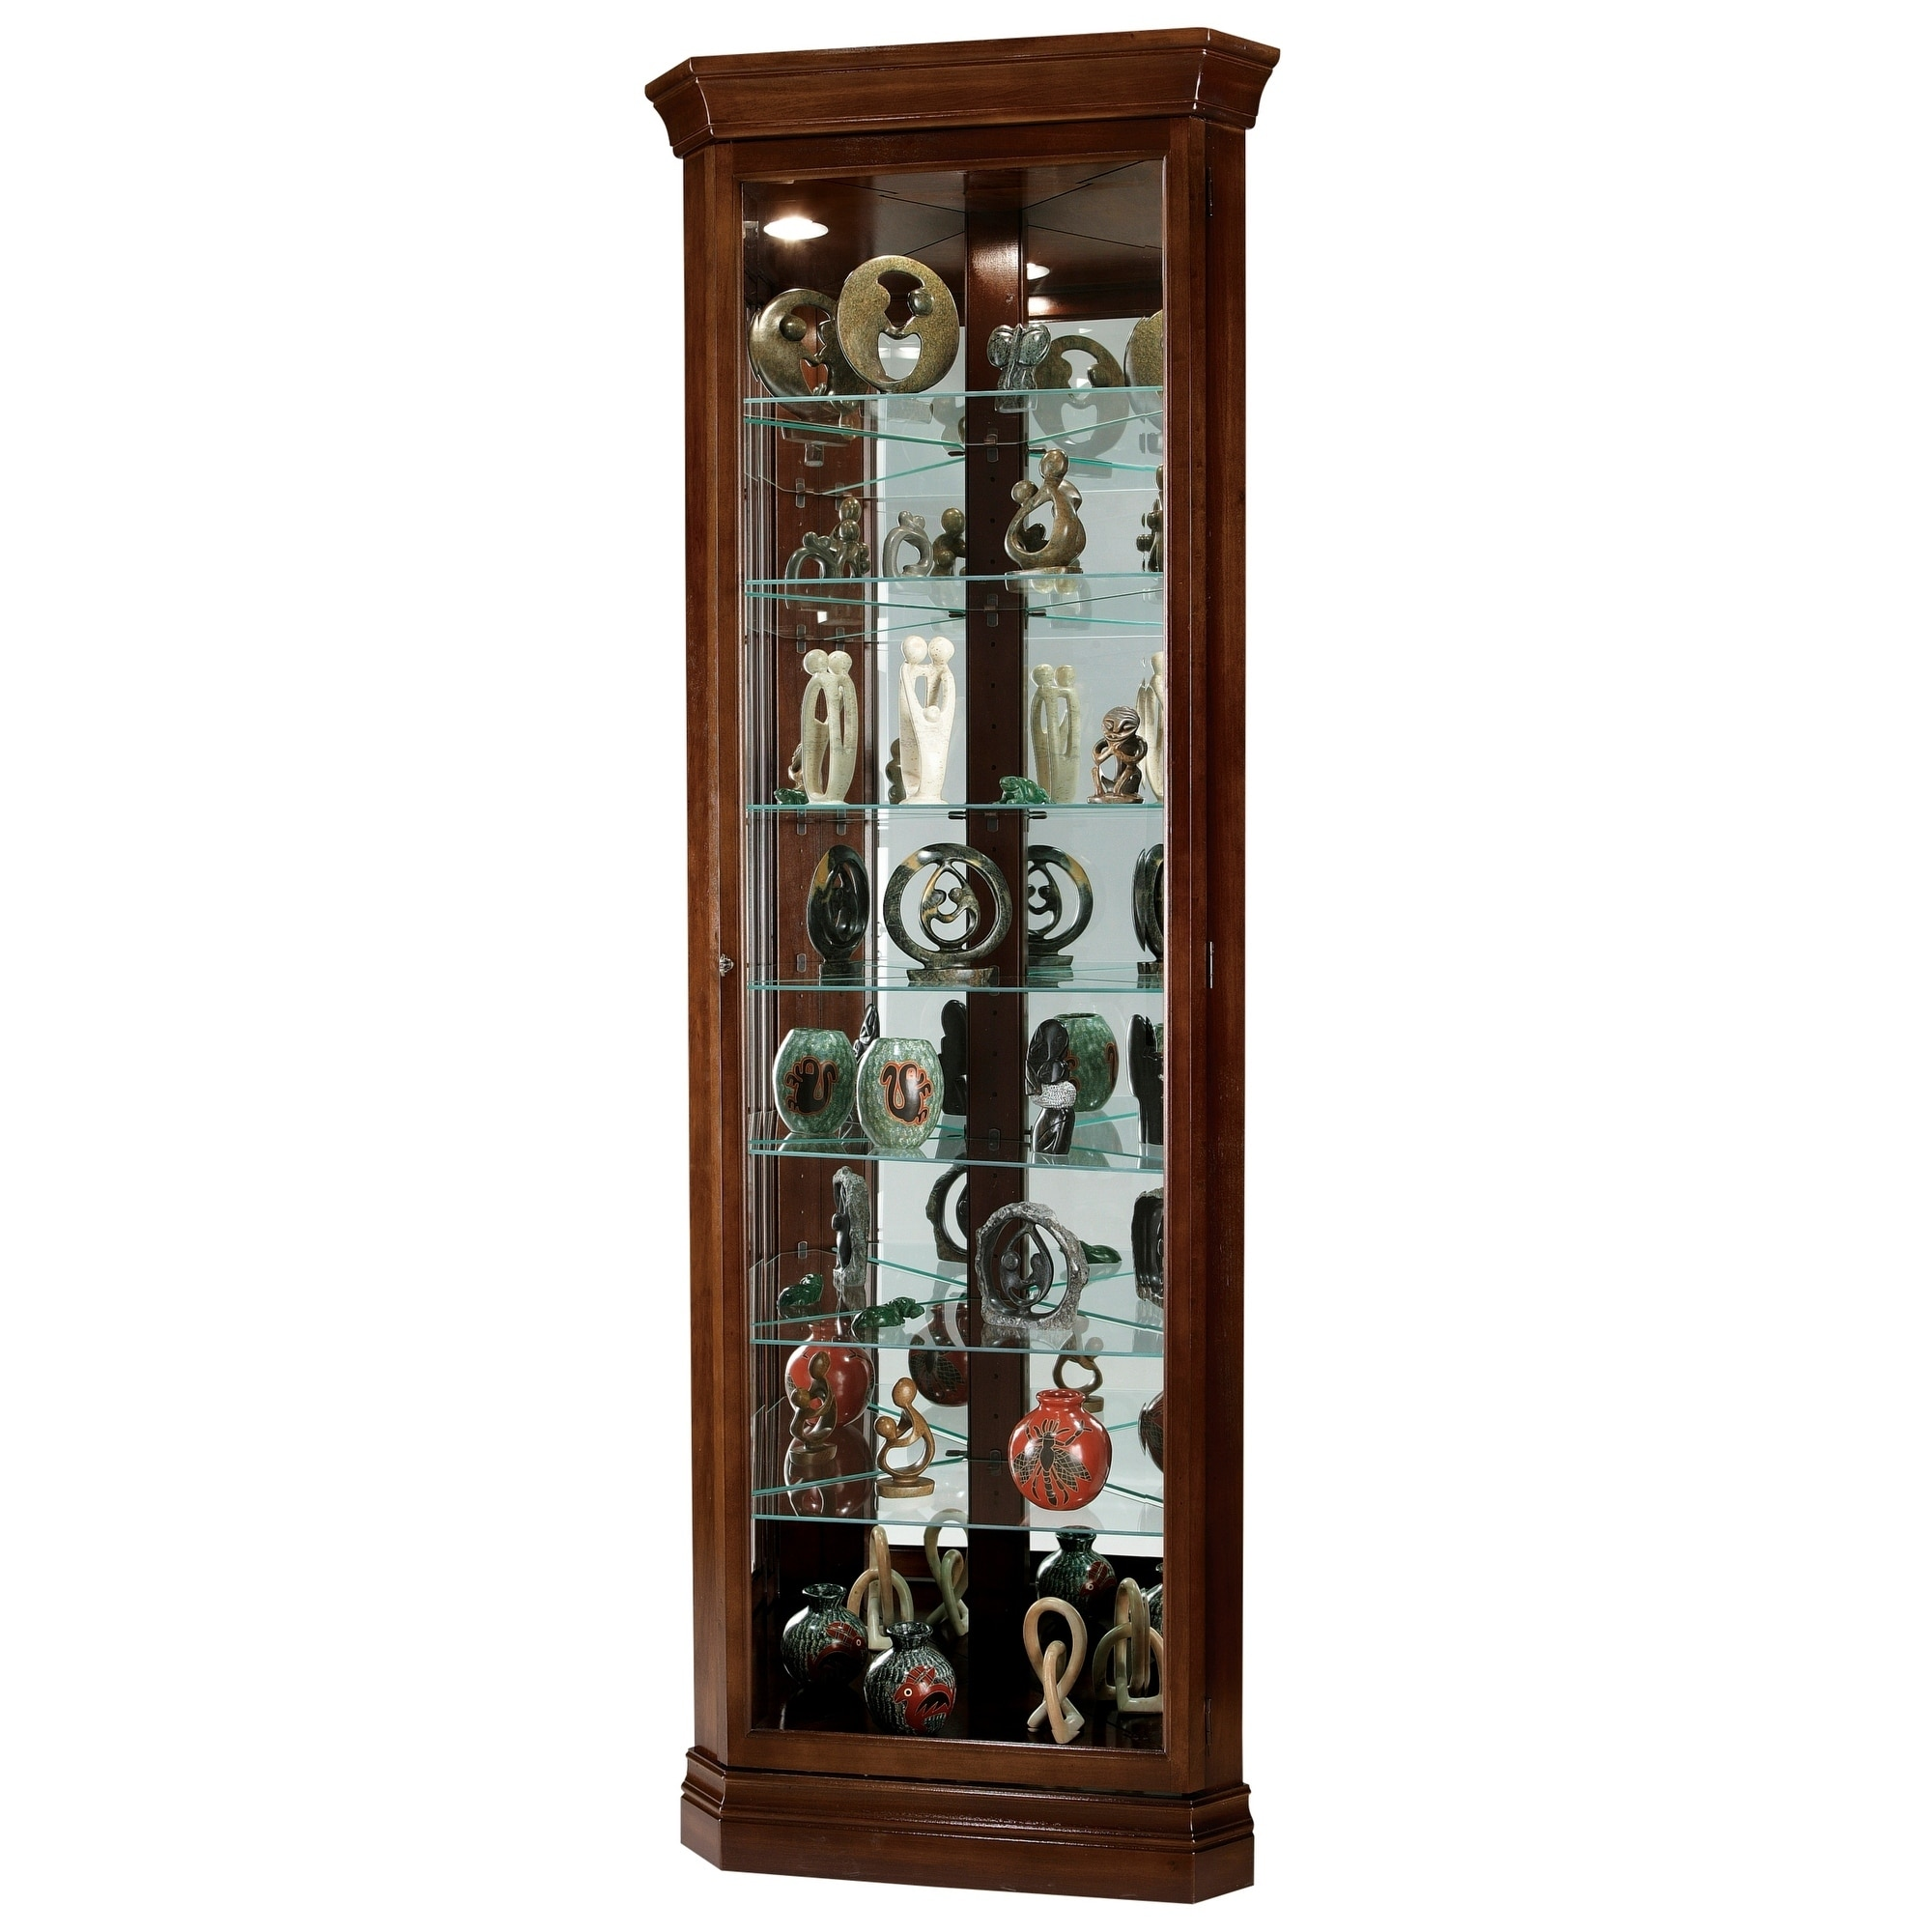 Howard Miller Drake Contemporary Medium Brown Wood 8 Shelf Corner Curio Cabinet Free Shipping Today 23449343